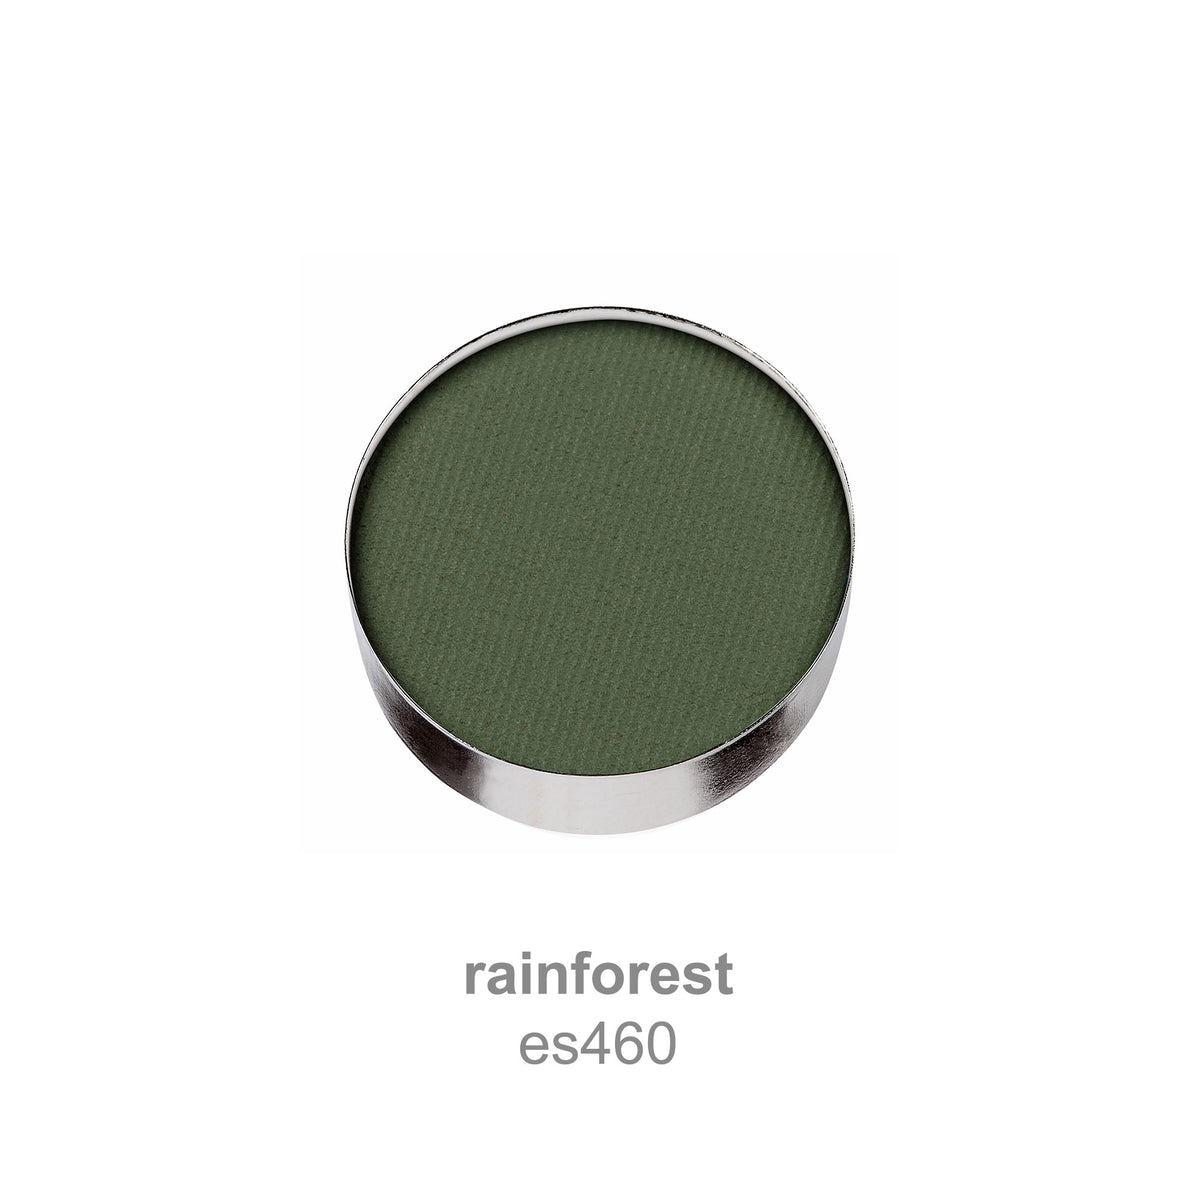 rainforest (es460)